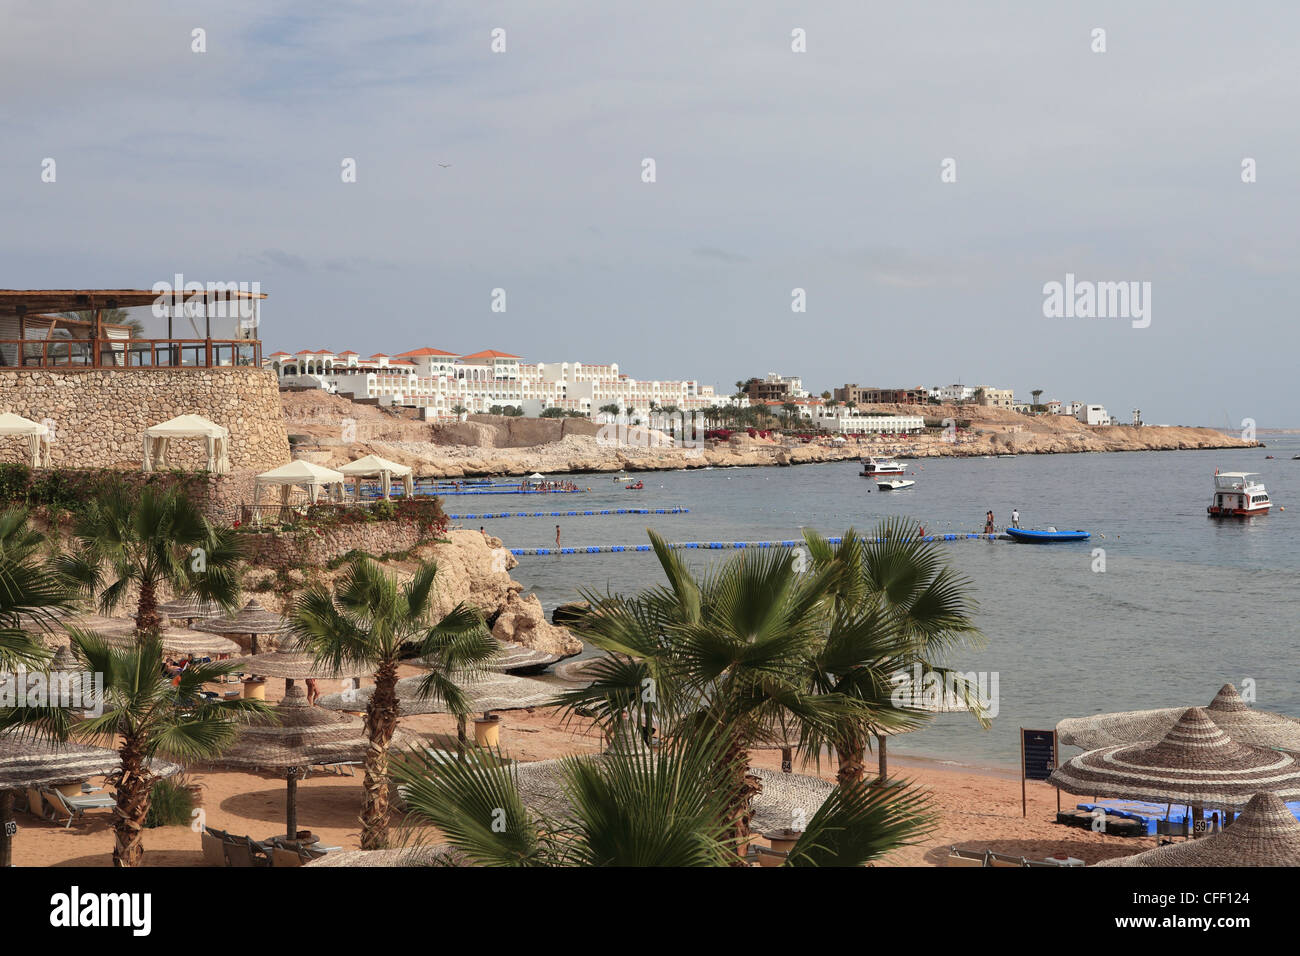 The beach area at the Savoy Resort at White Knight Beach, Sharm el-Sheikh, Egypt, North Africa, Africa - Stock Image